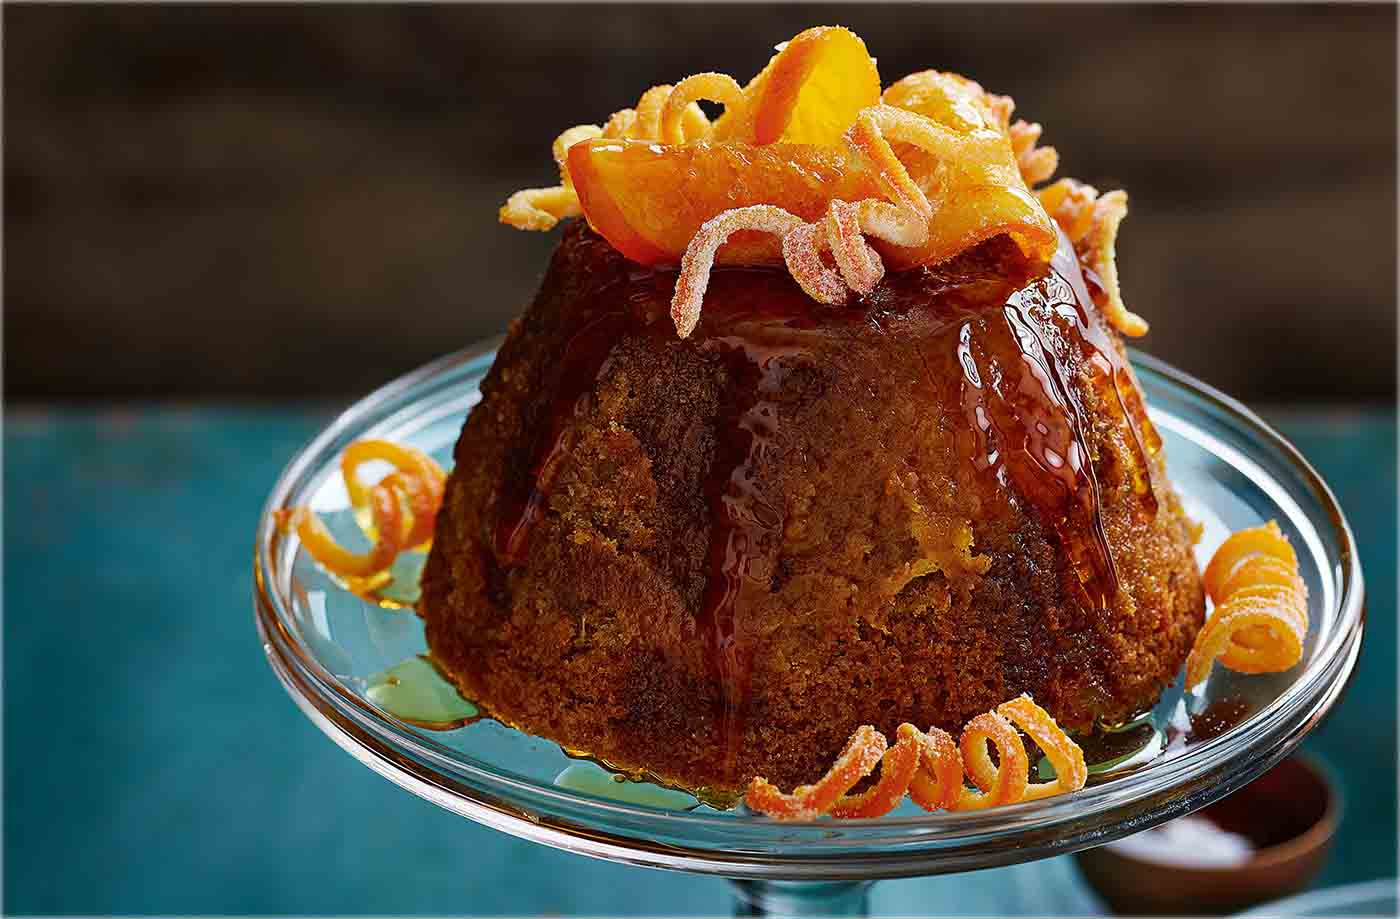 Orange, clove and ginger treacle sponge recipe